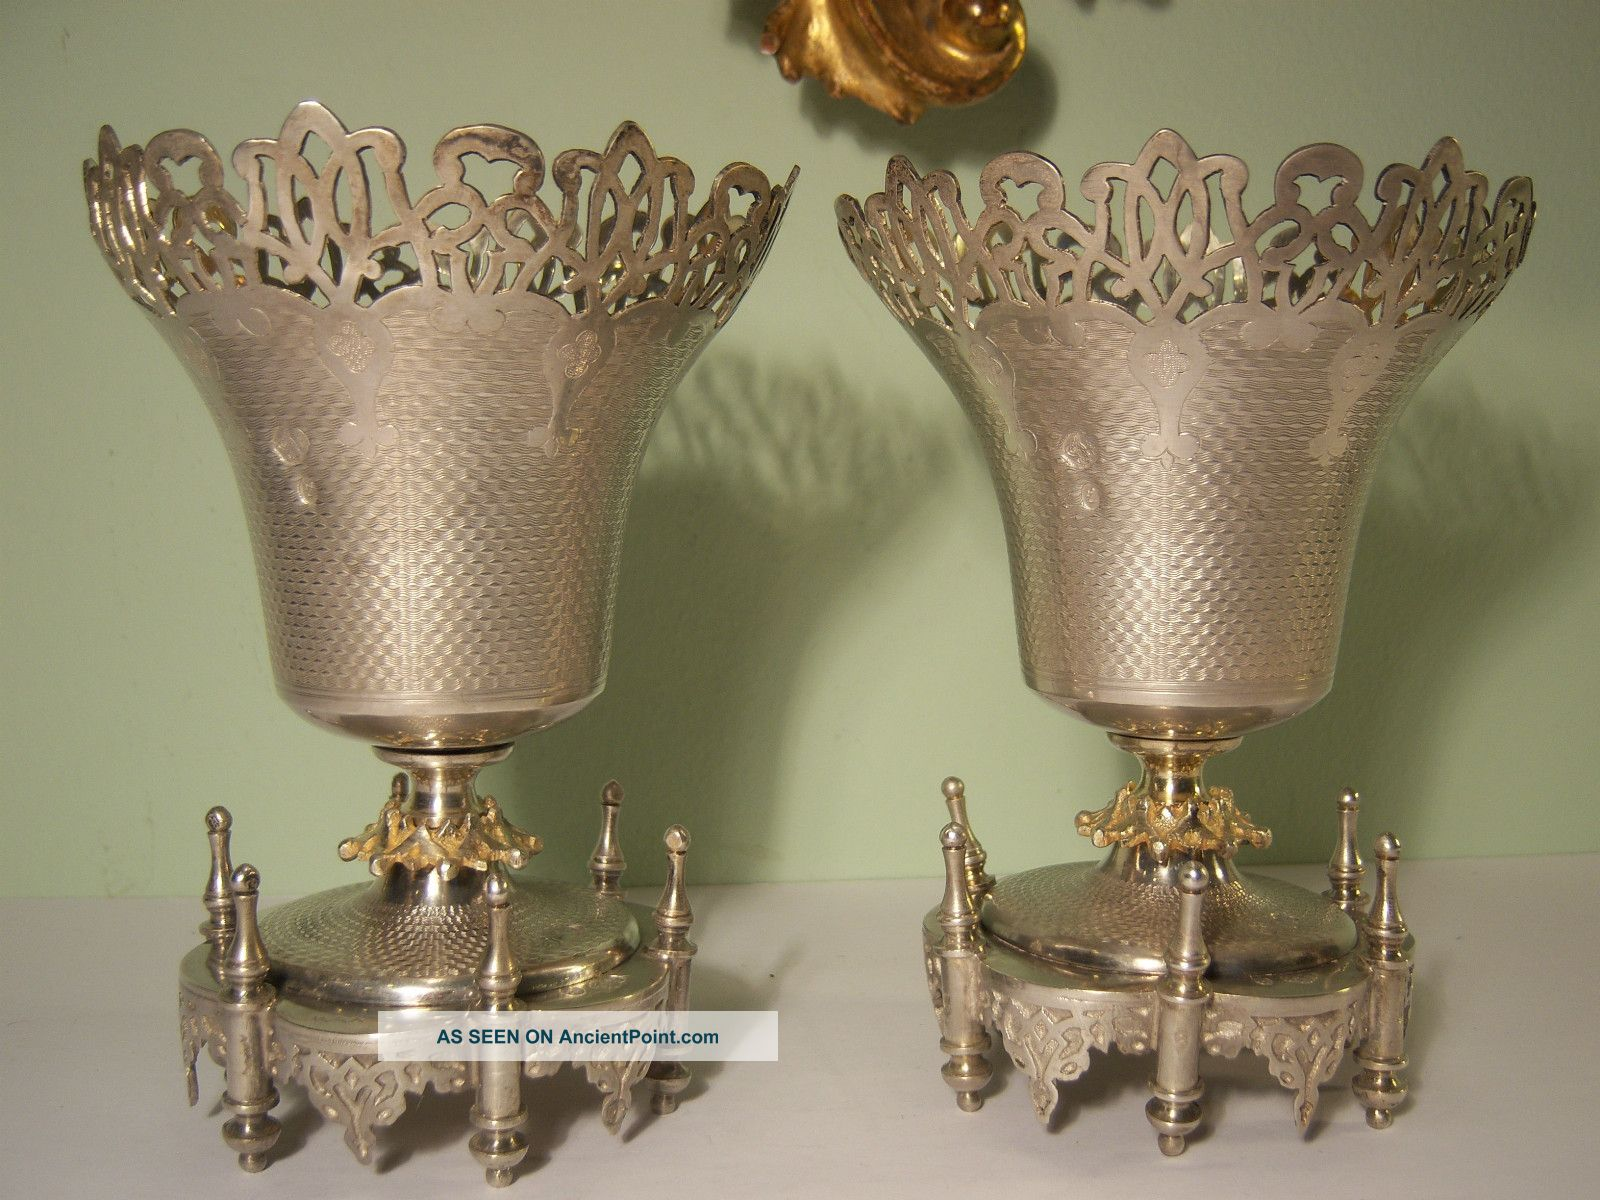 Pair Antique Turkish Silver With Gold Wash Ottoman Empire Museum Quality Vases Middle East photo